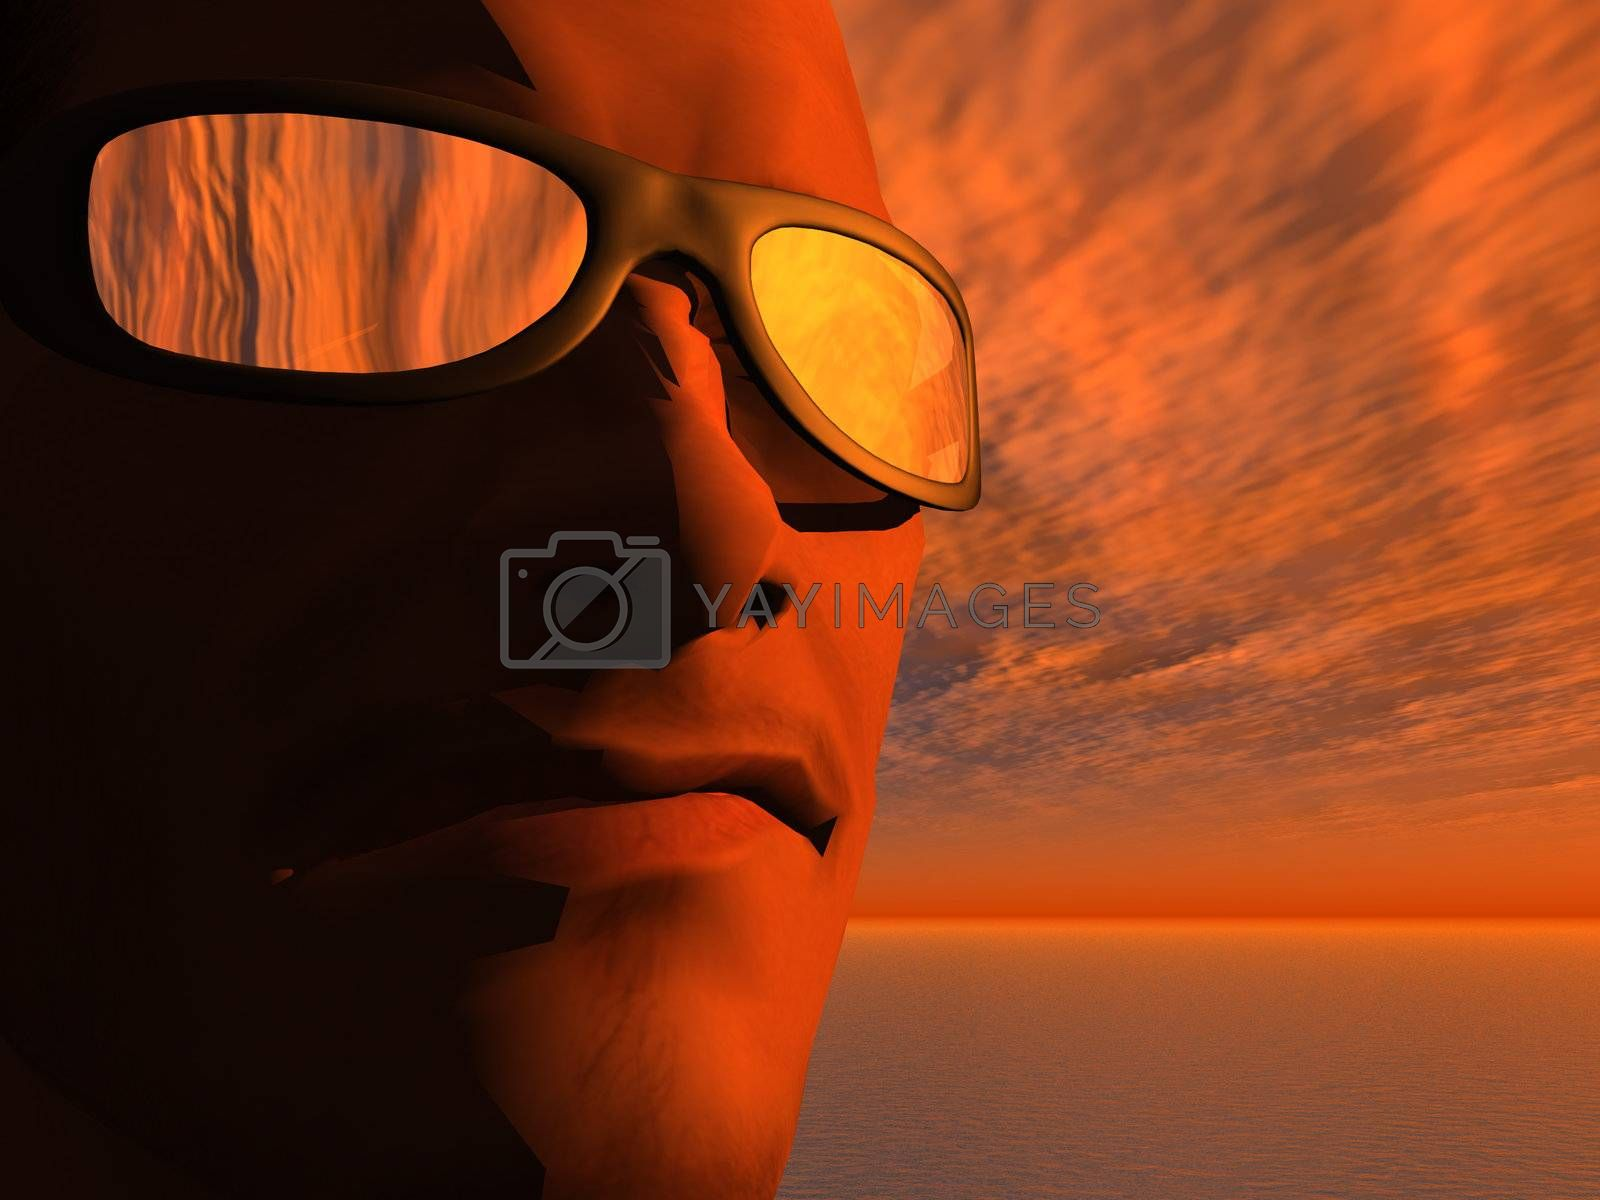 Royalty free image of sunset by drizzd